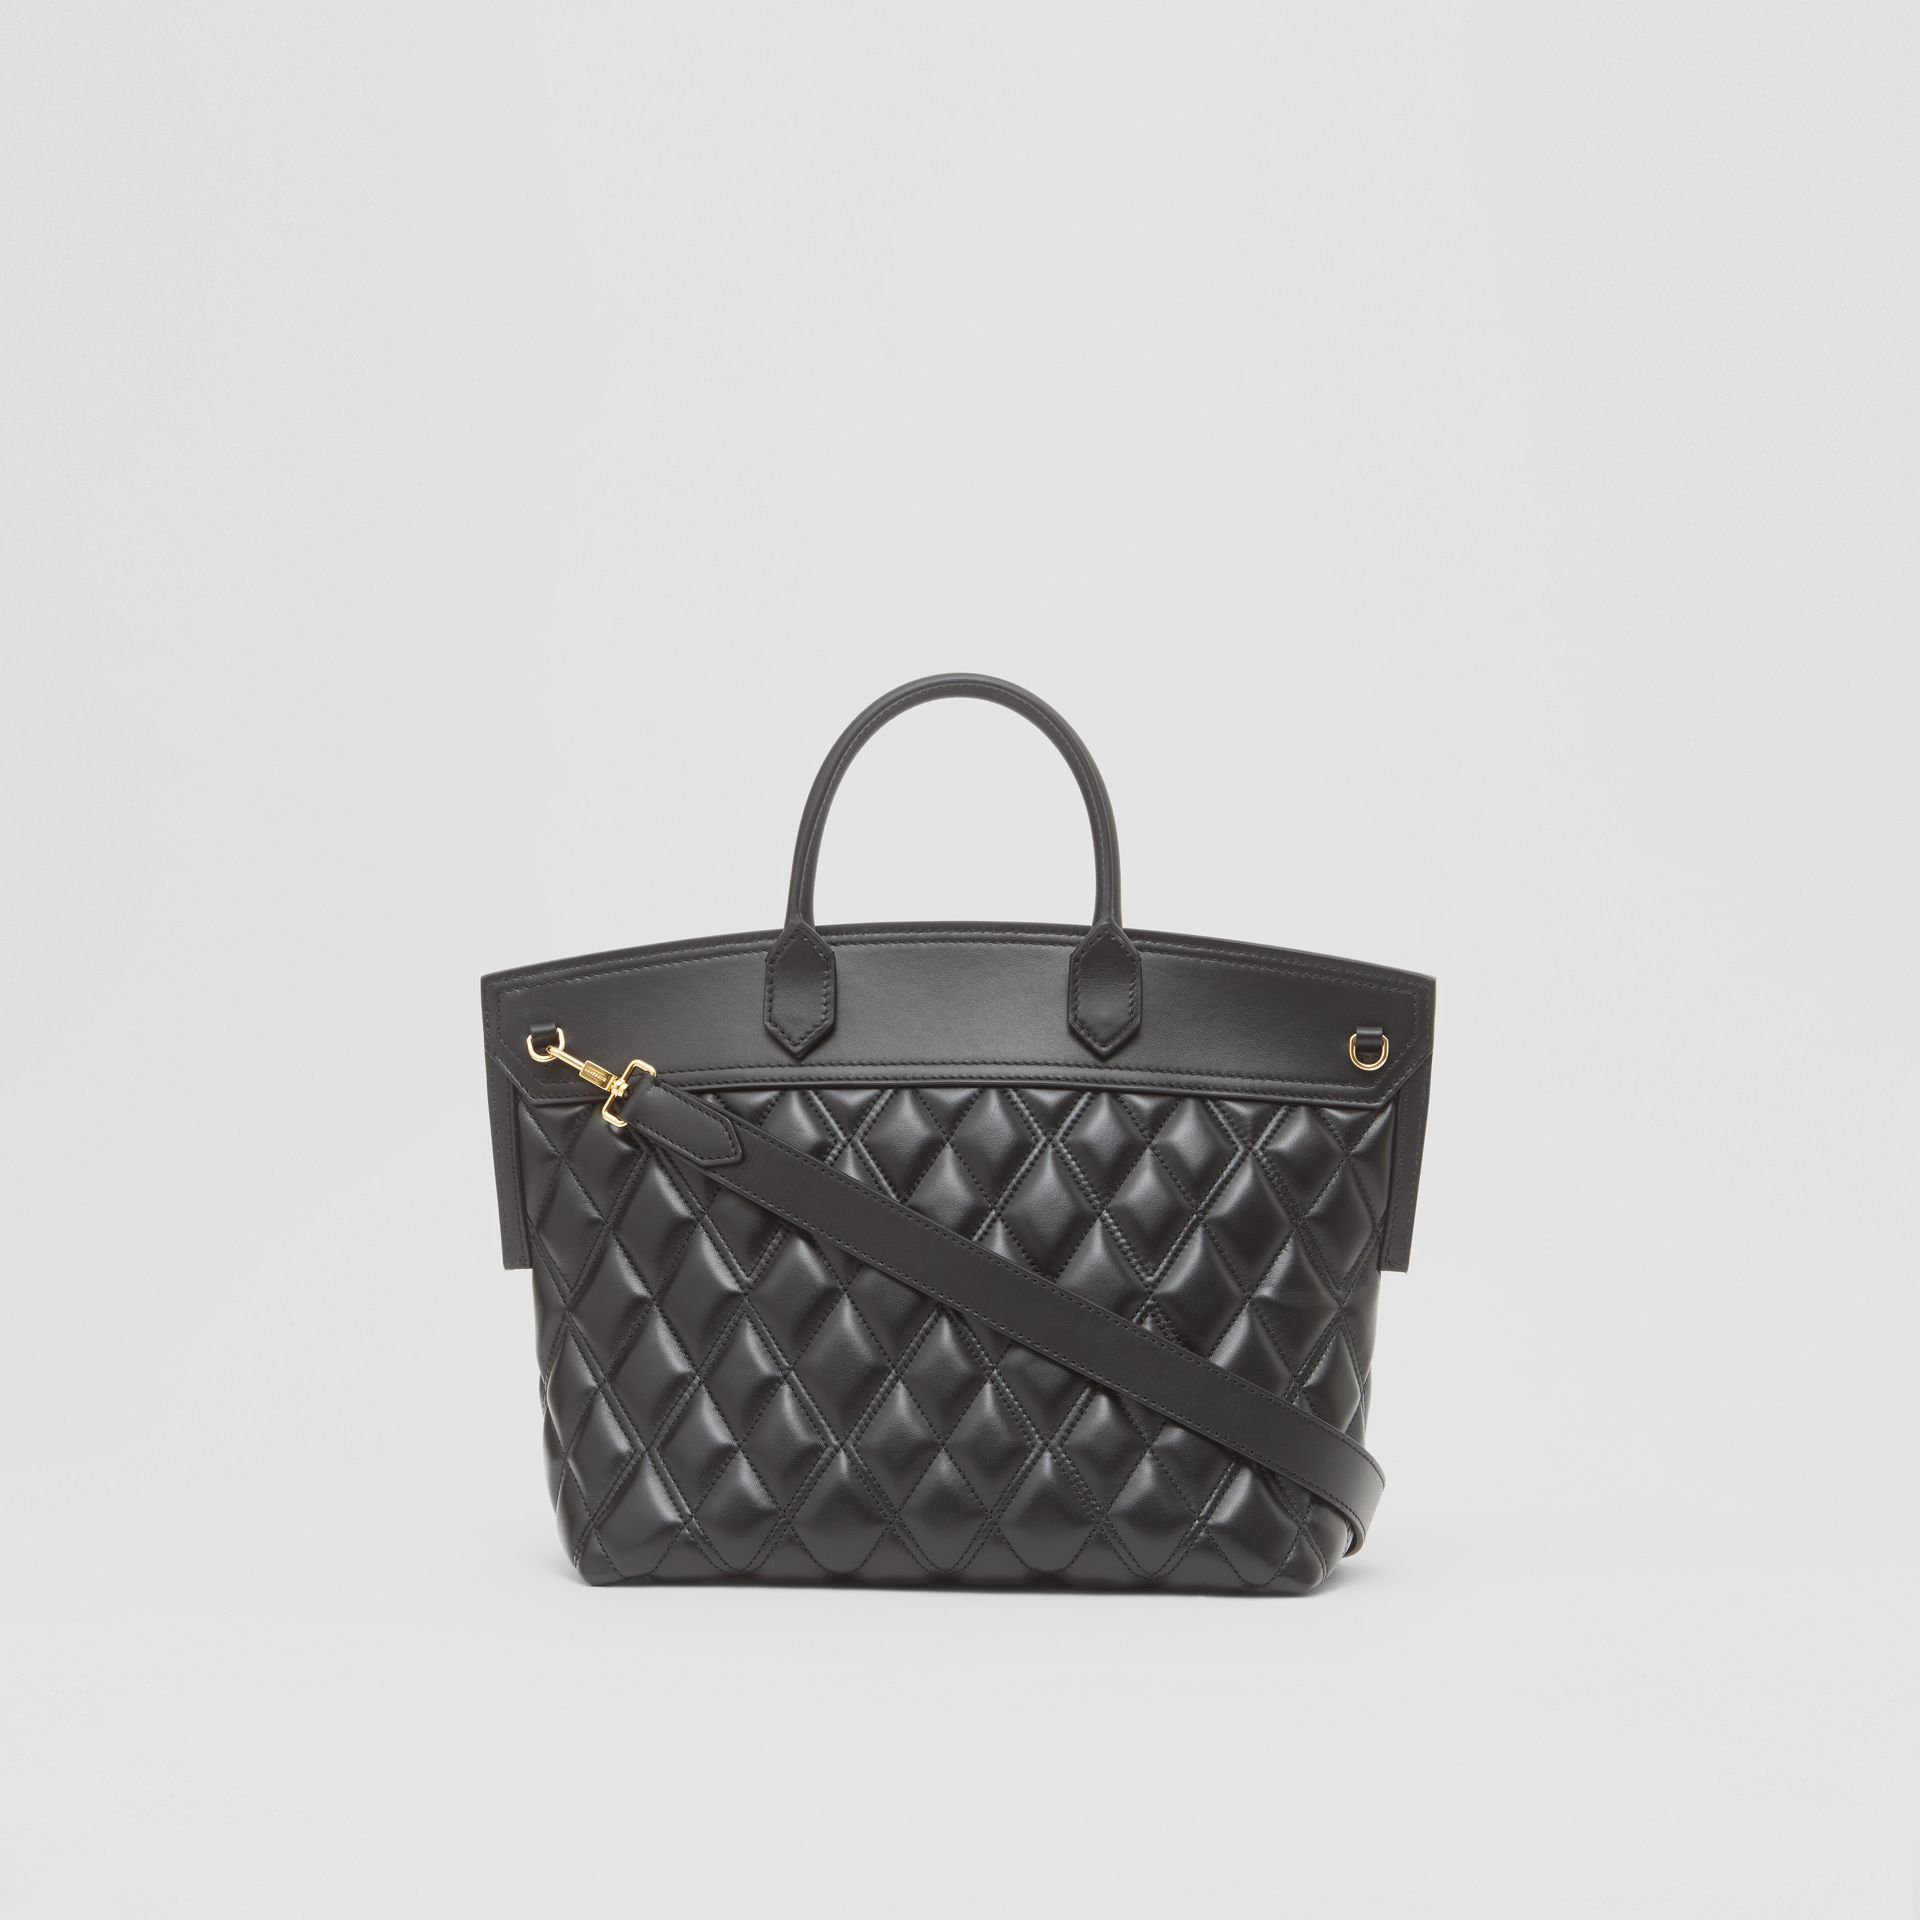 Small Quilted Lambskin Society Top Handle Bag in Black - Women | Burberry - gallery image 5